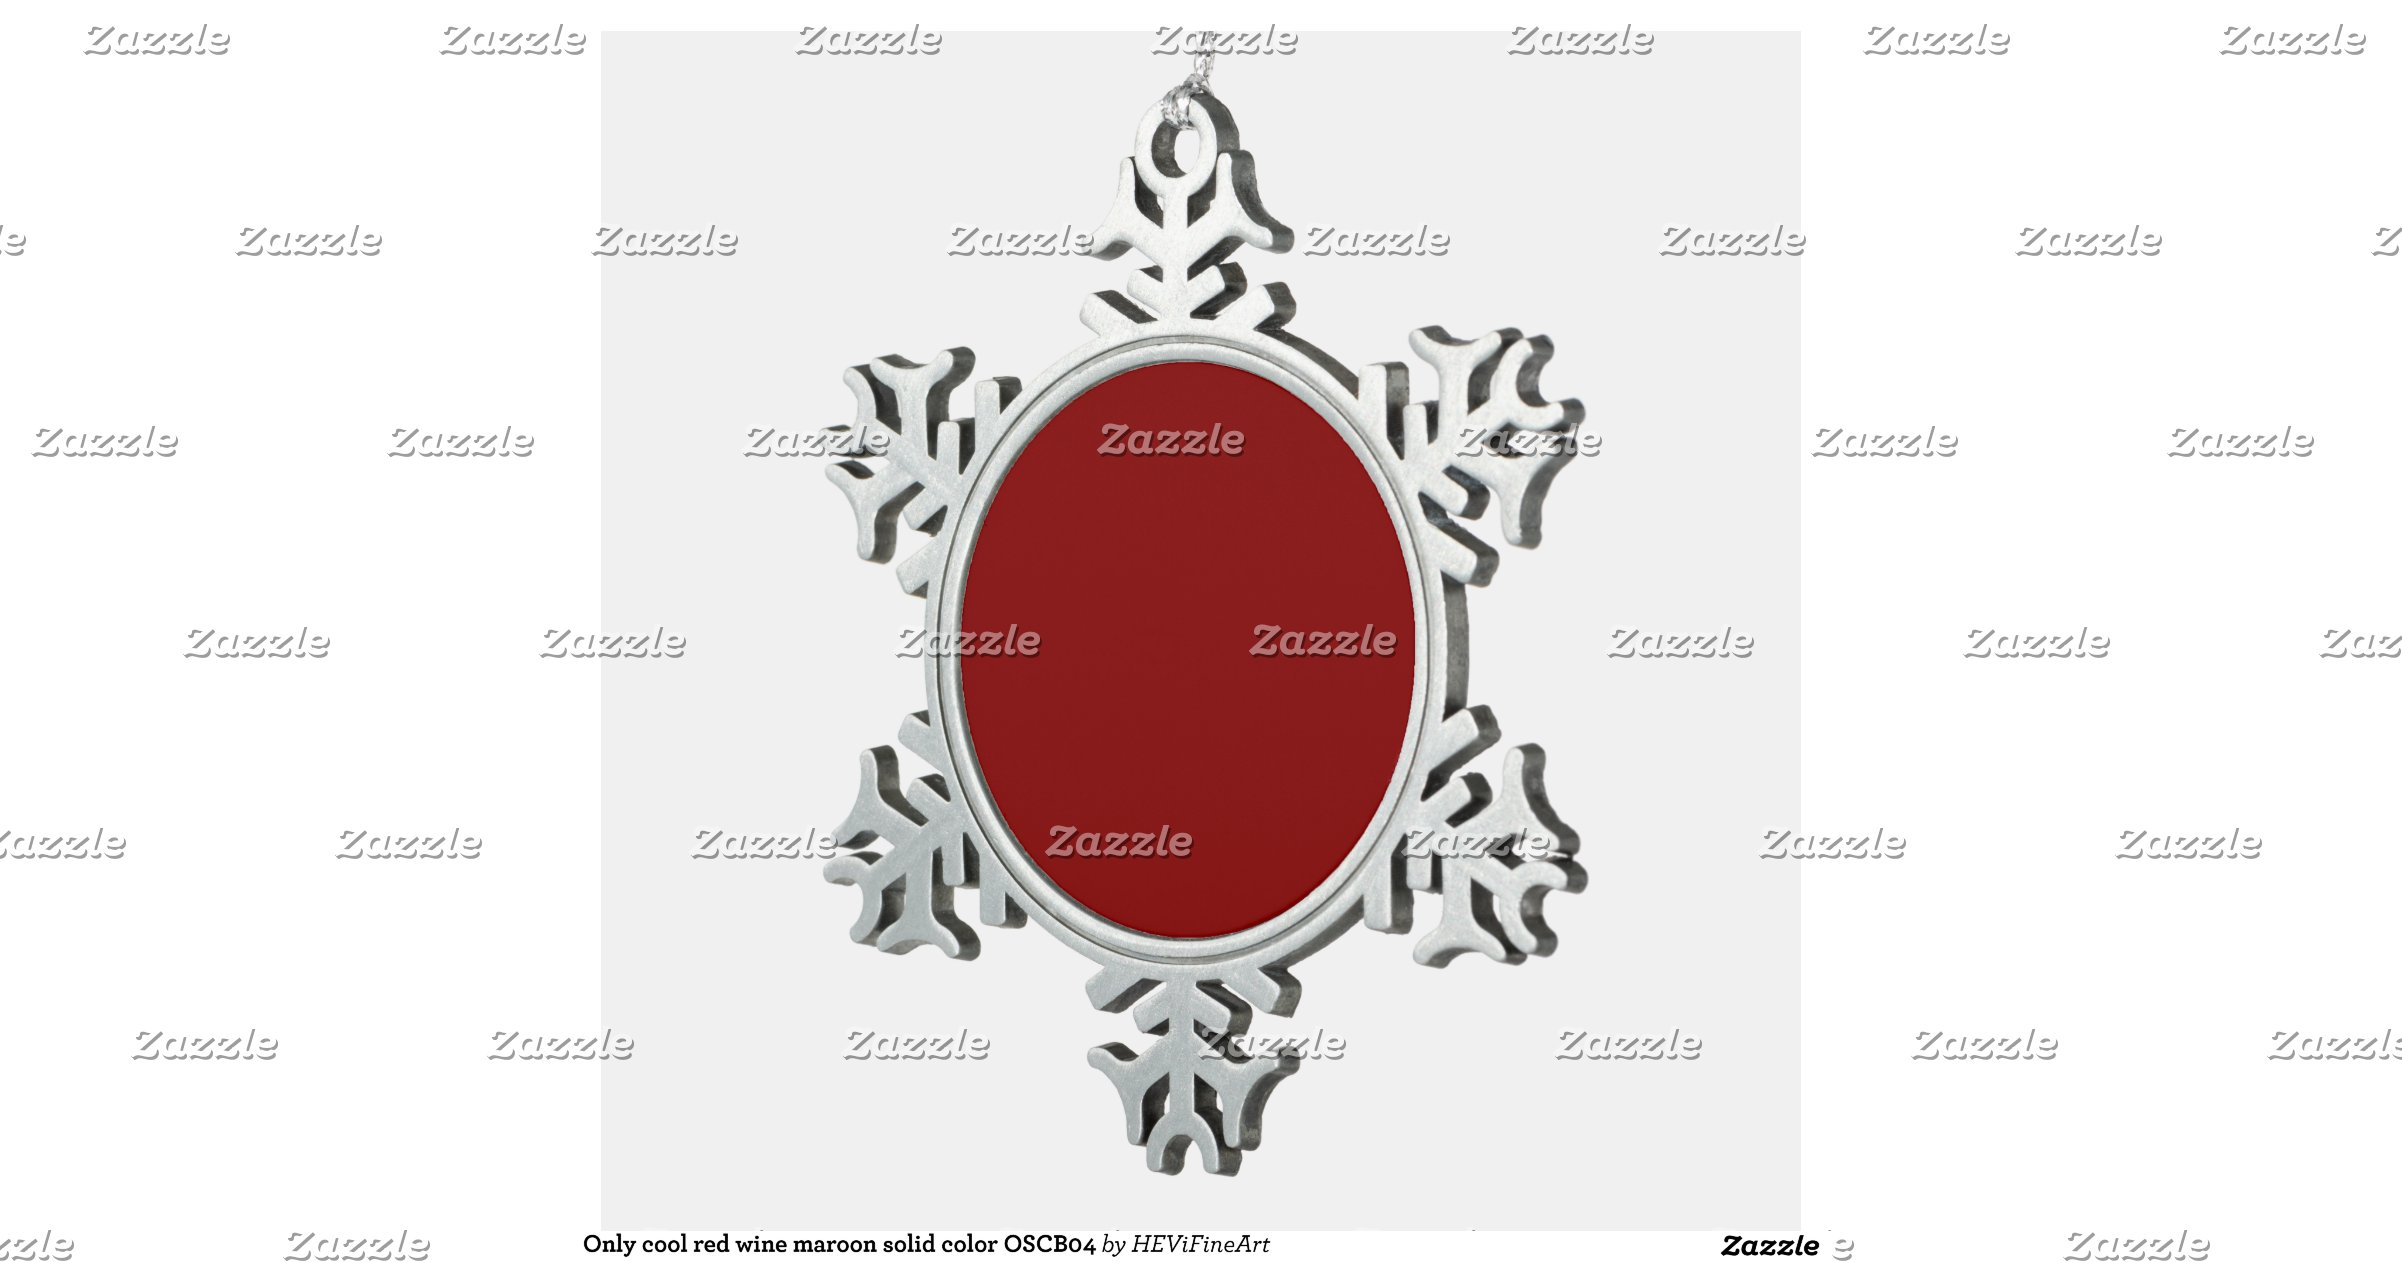 Only cool red wine maroon solid color background snowflake